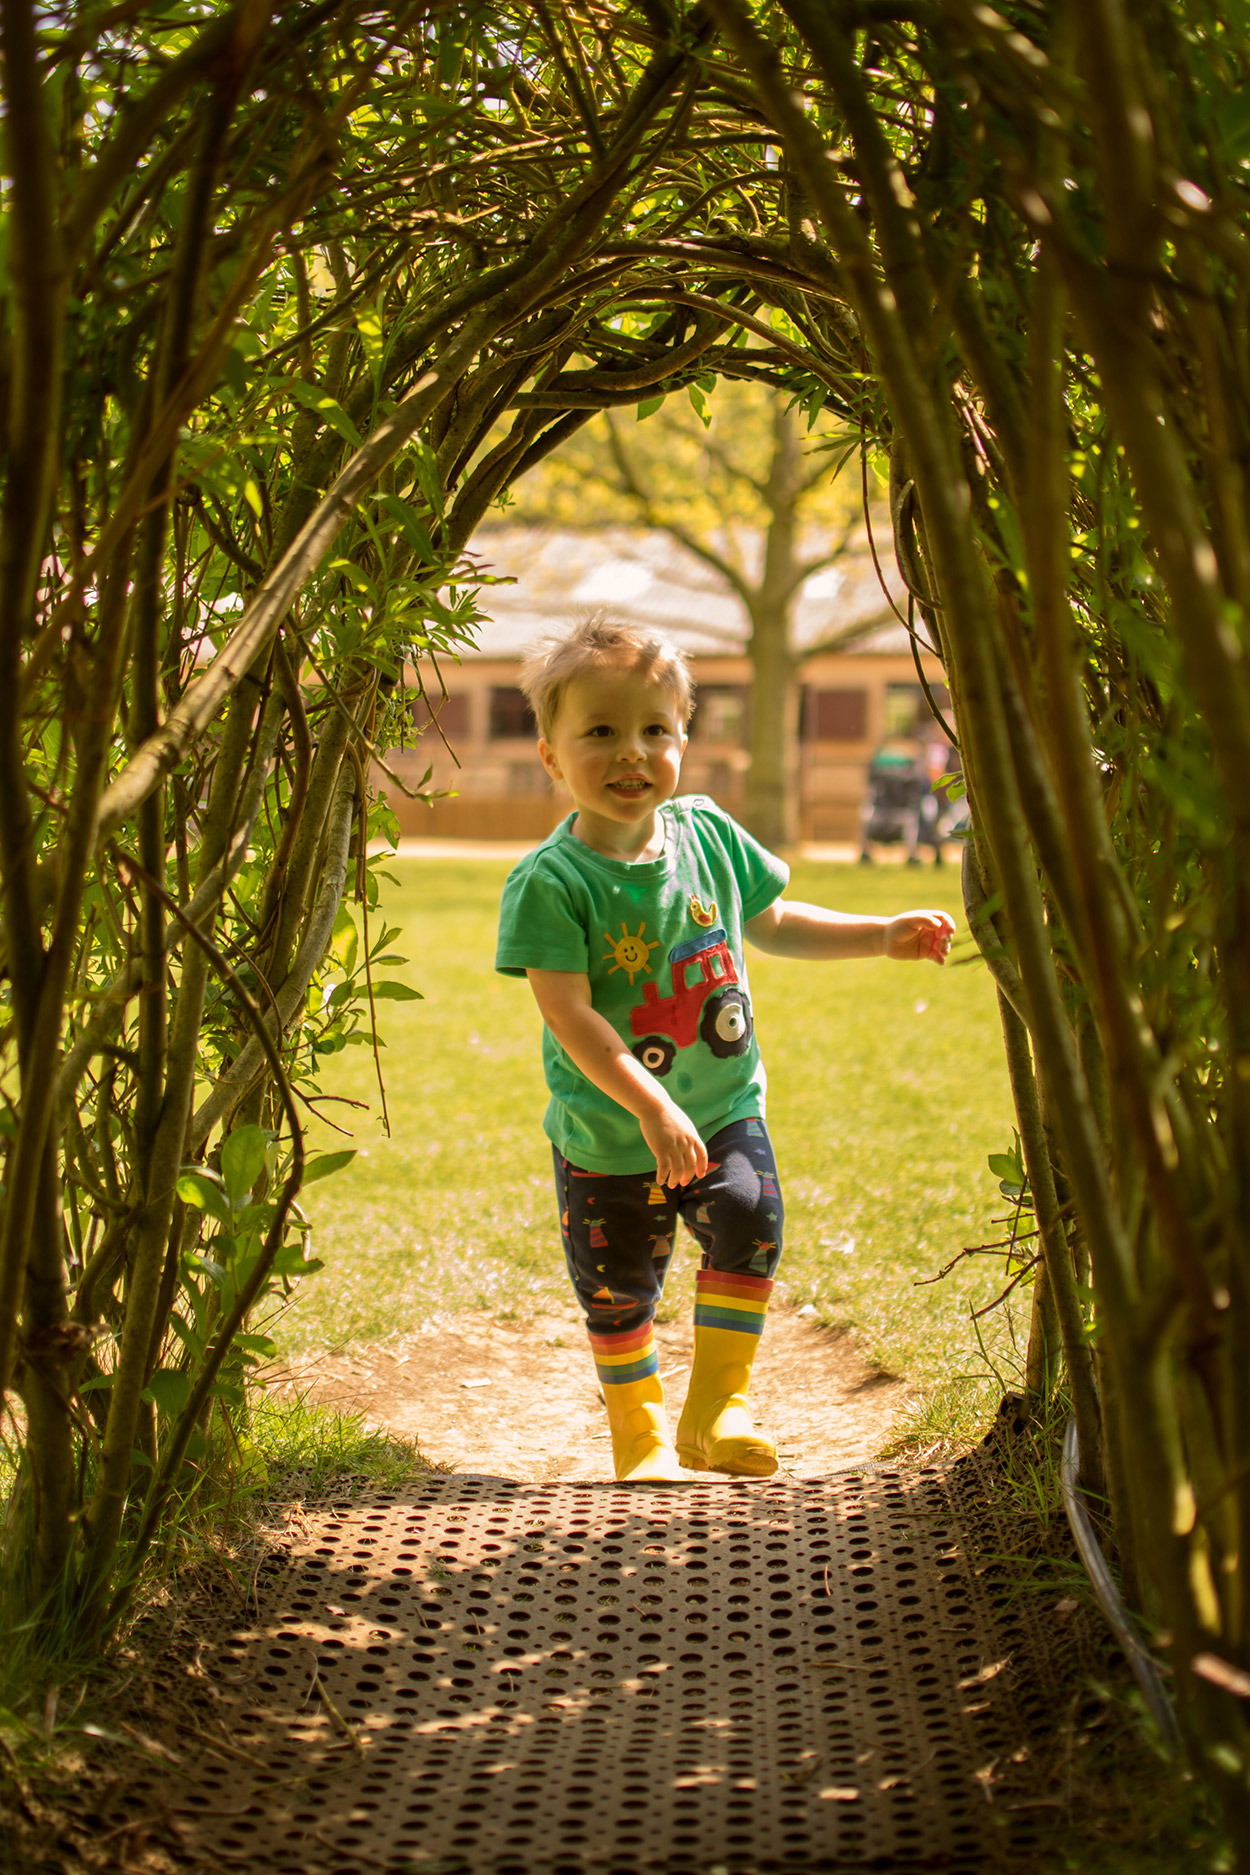 3 year old pre-schooler running through the tree den at the farm wearing Frugi tractor t-shirt and bottoms at Cotswold Wildlife Park with family